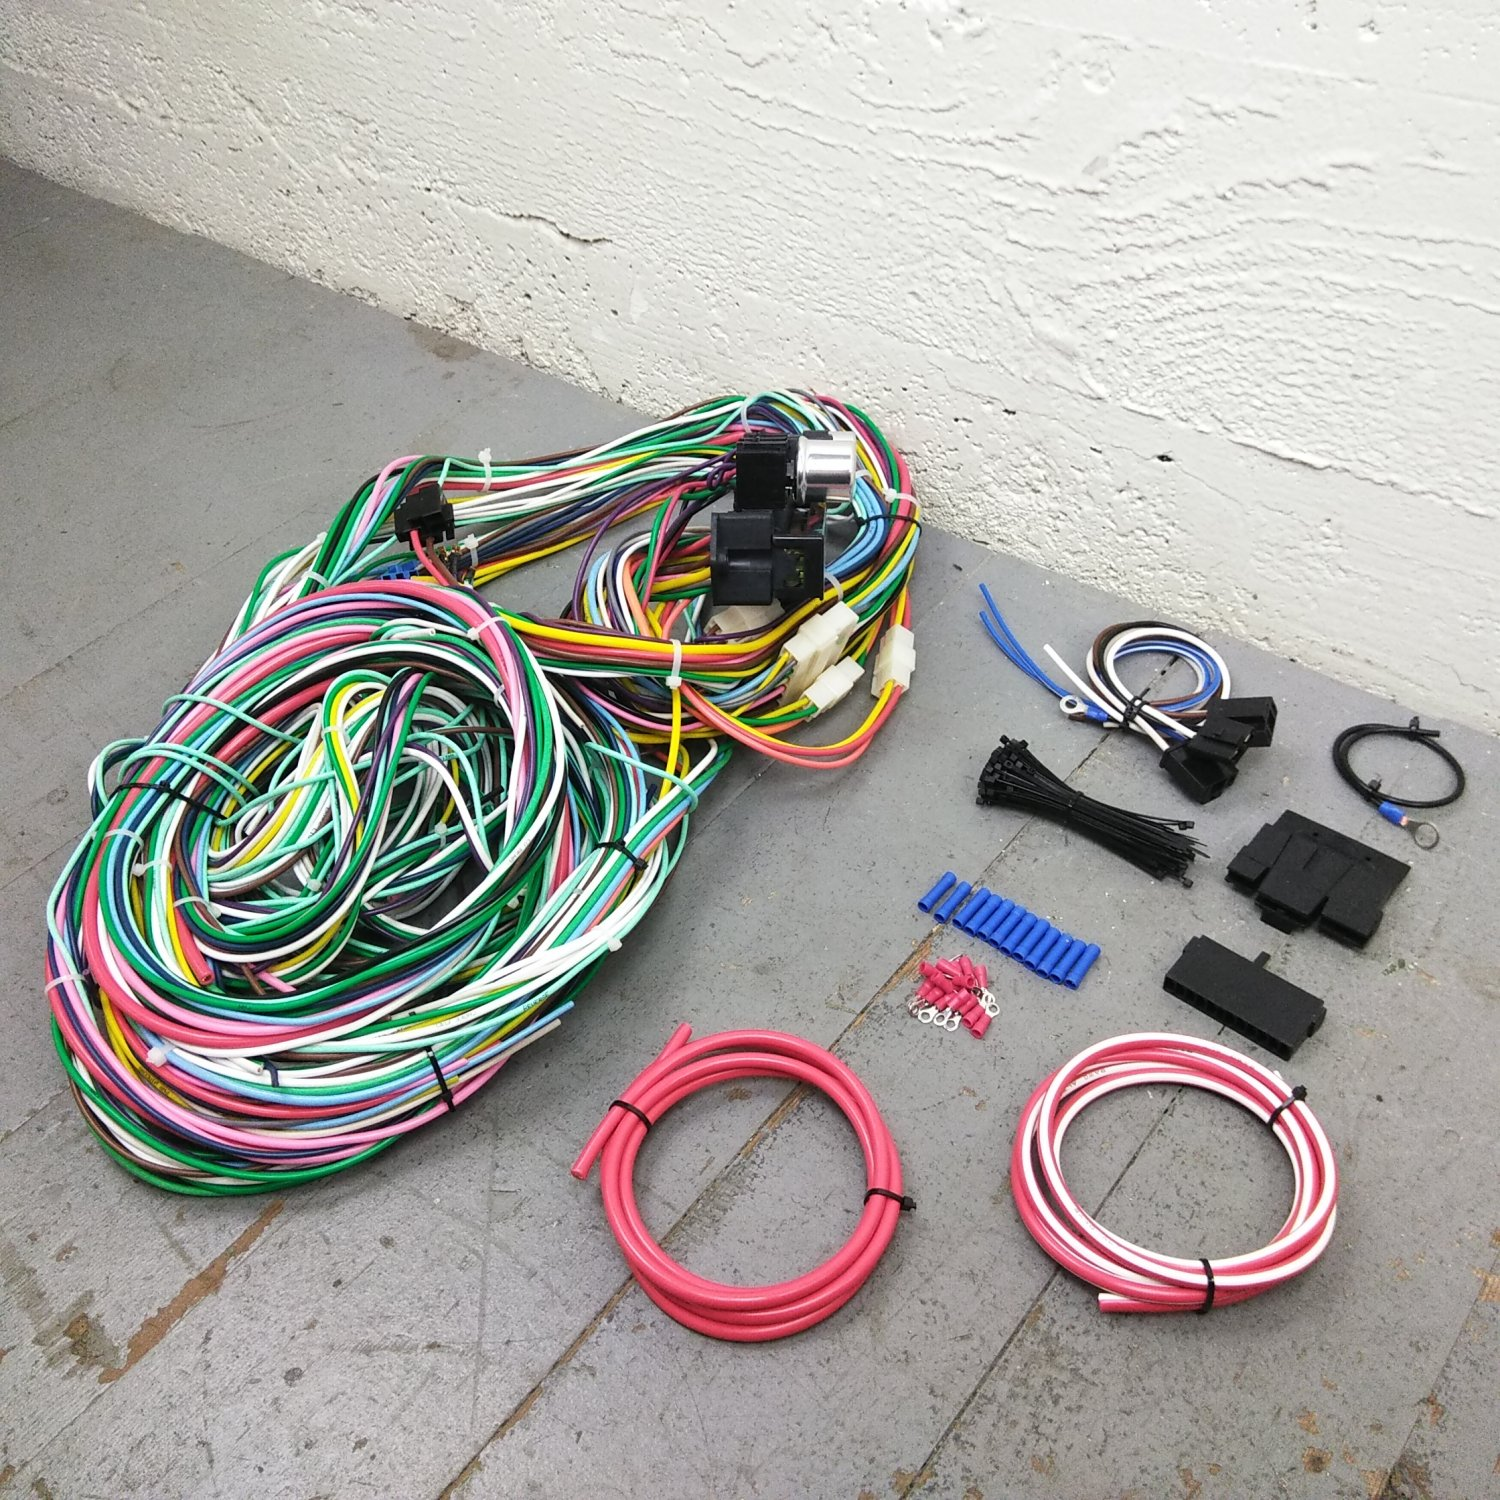 Ford Bronco Wiring Harness | Wiring Liry on 1997 f250 motor wiring harness, drag race wiring harness, universal hot rod wiring harness,